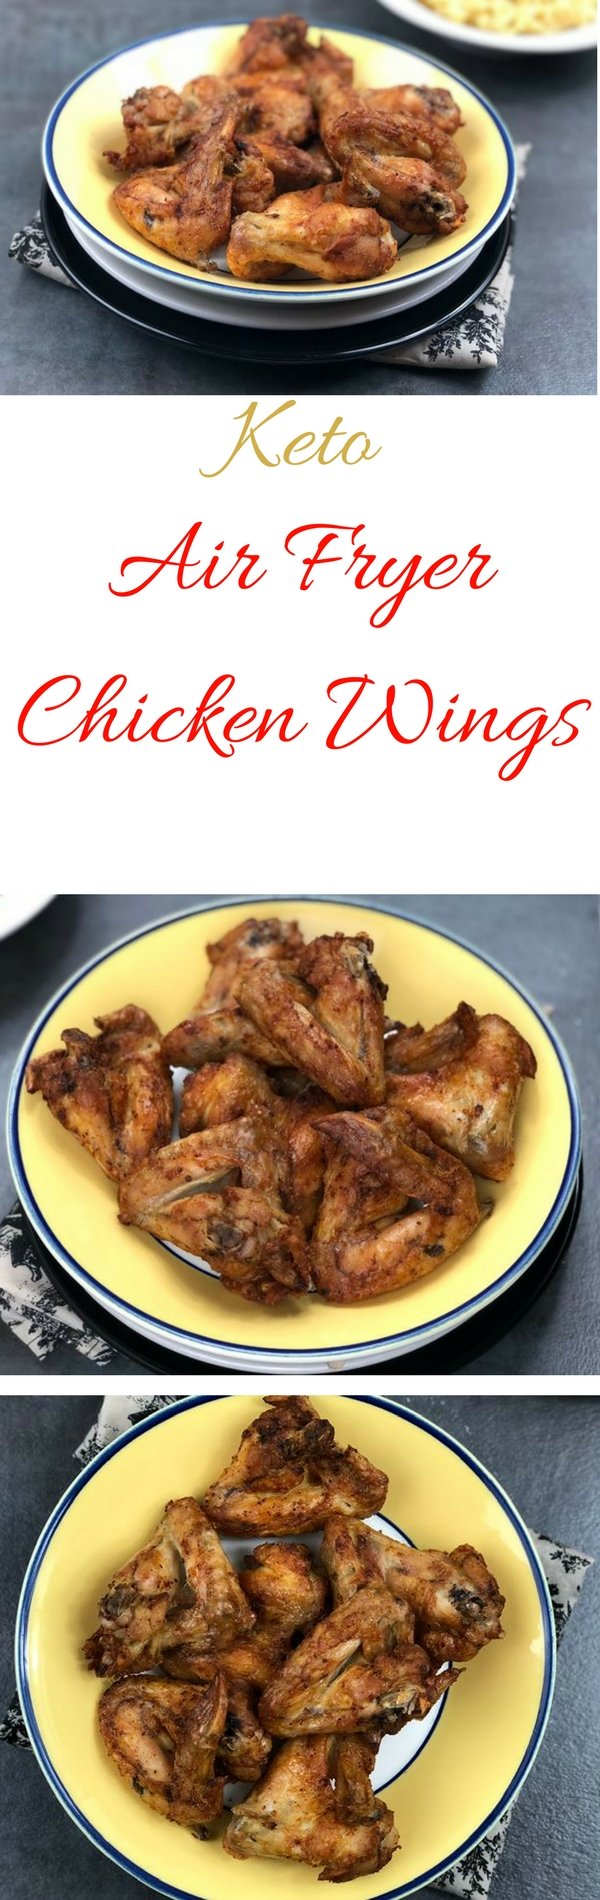 Chicken wings are one of my favorite fried foods. These Keto Air Fryer Chicken Wings are a healthier version of my favorite fried chicken recipe. I am currently following the keto lifestyle and my air fryer comes in handy anytime I have to cook 2 separate meals. #airfryer #chicken #keto #lowcarb #chickewings